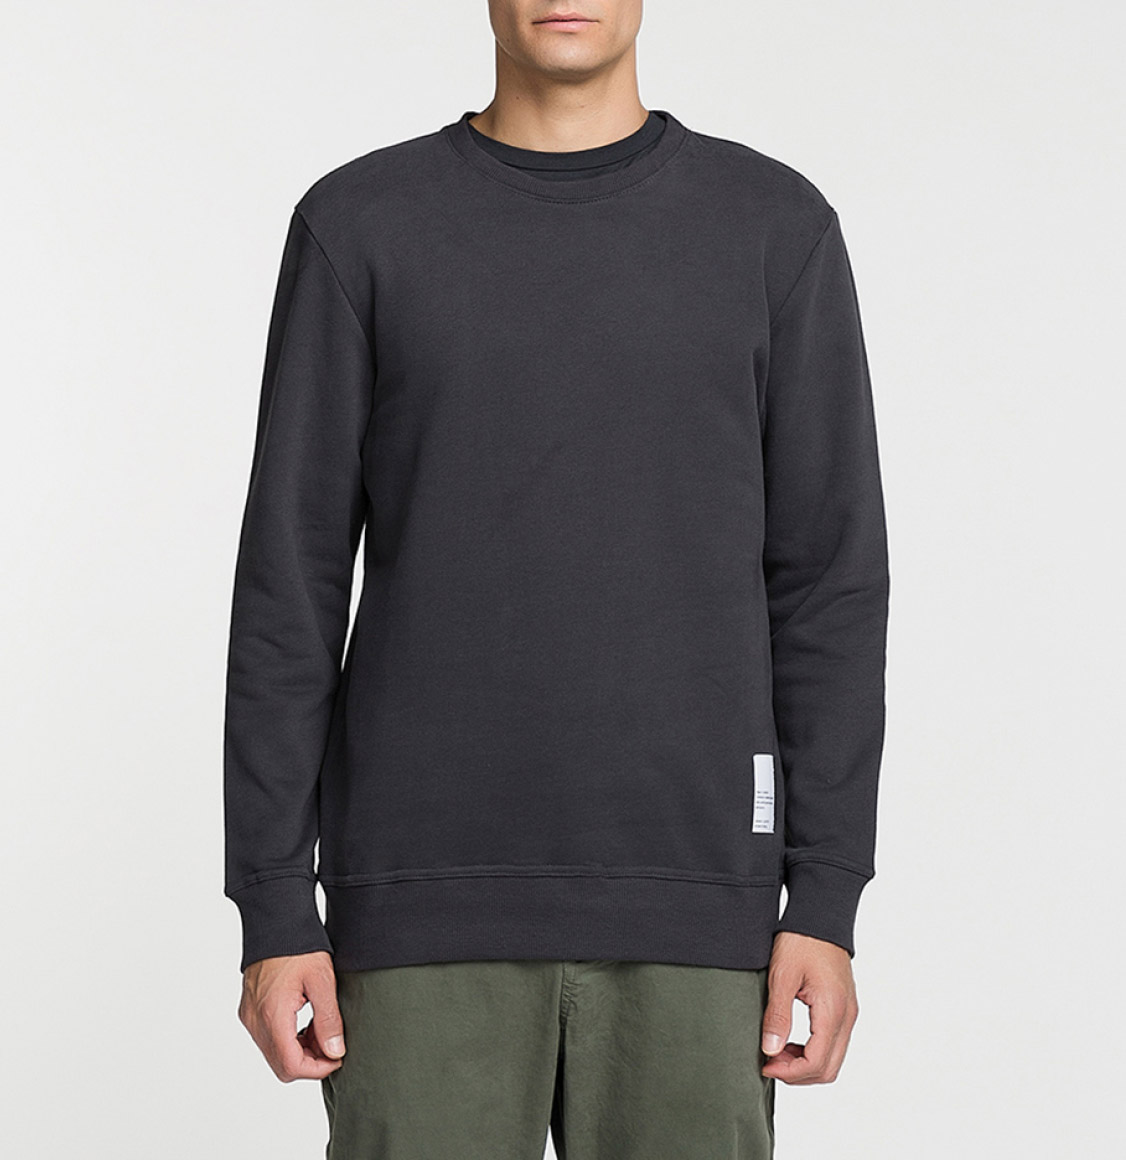 Logomania Crew Neck Sweatshirt Charcoal Grey